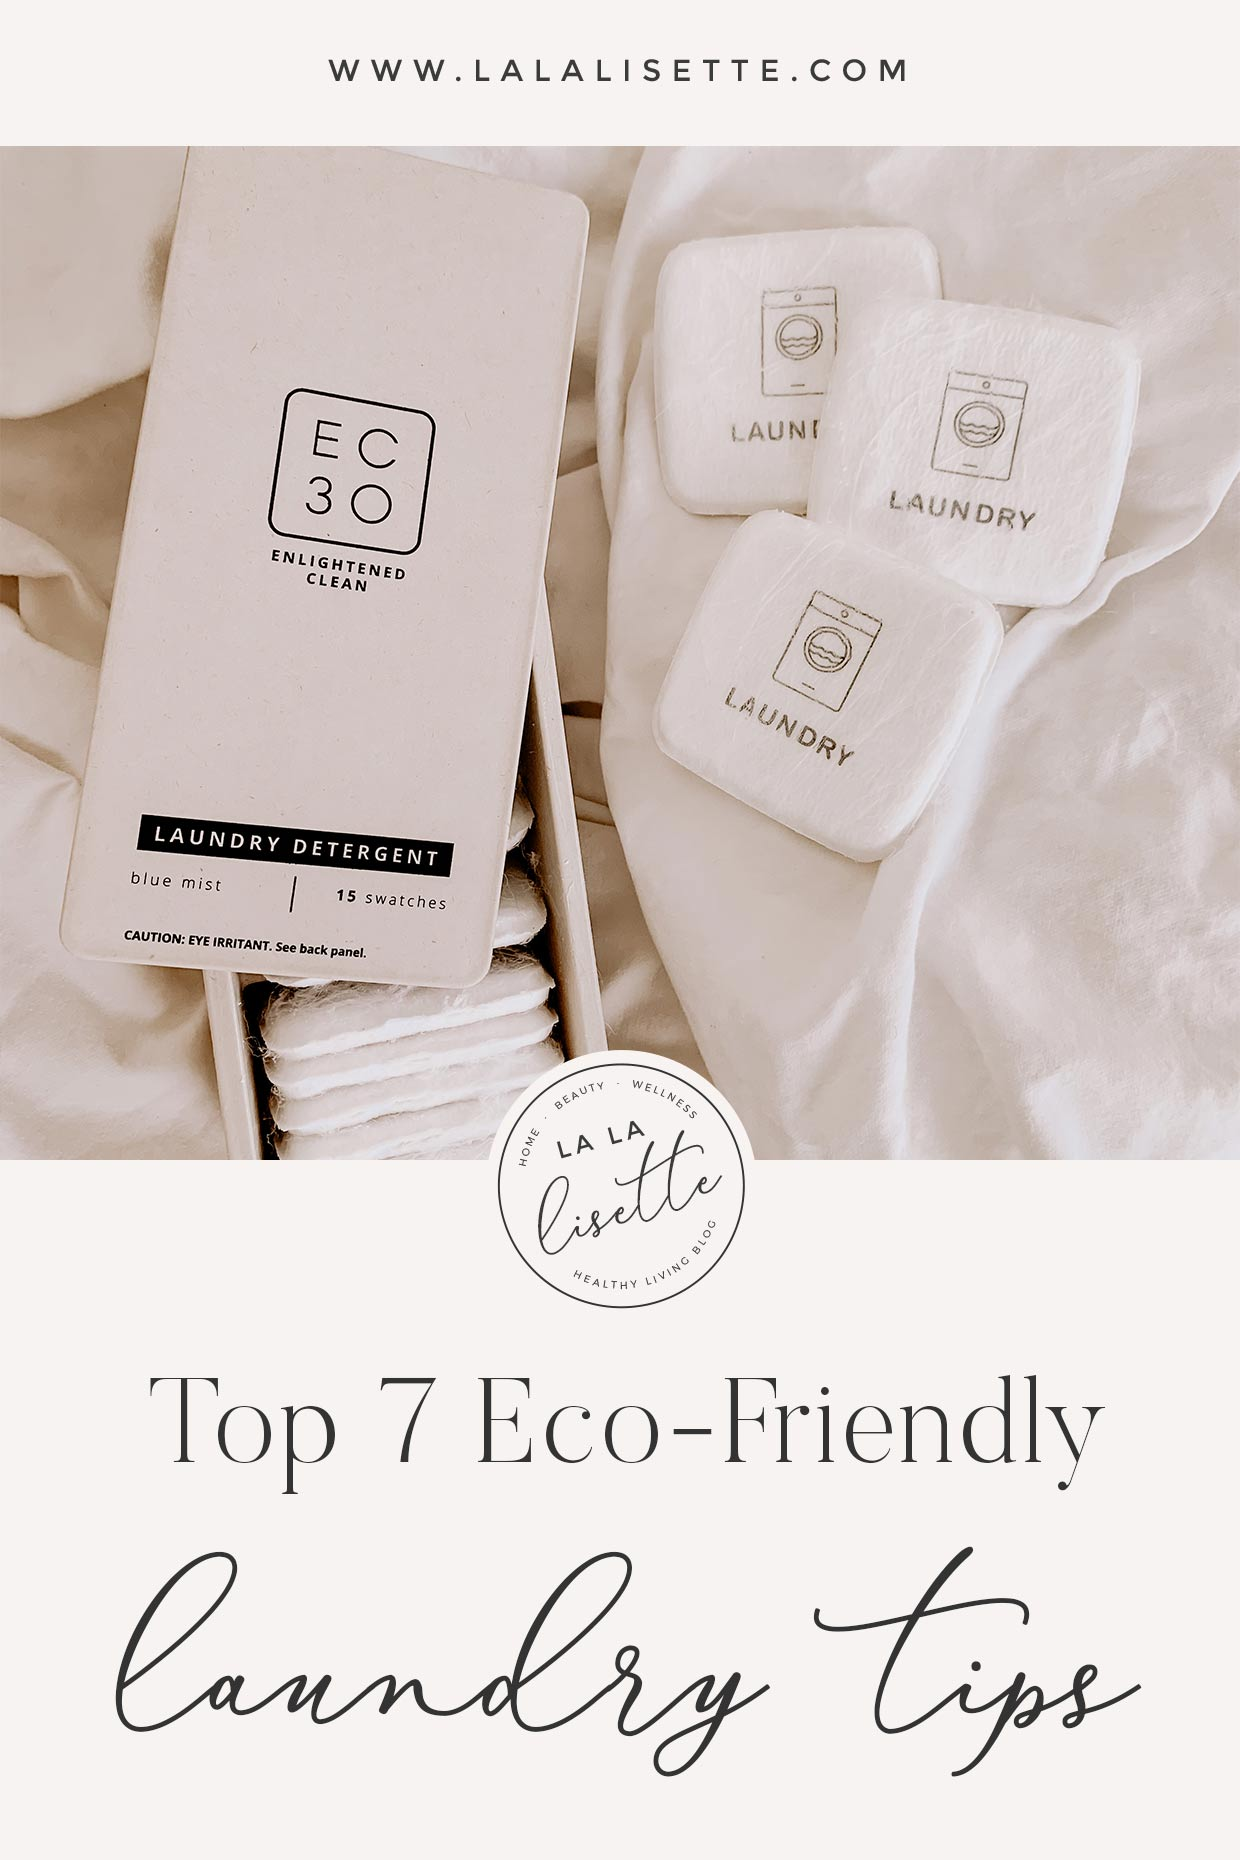 graphic with top 7 eco-friendly laundry tips